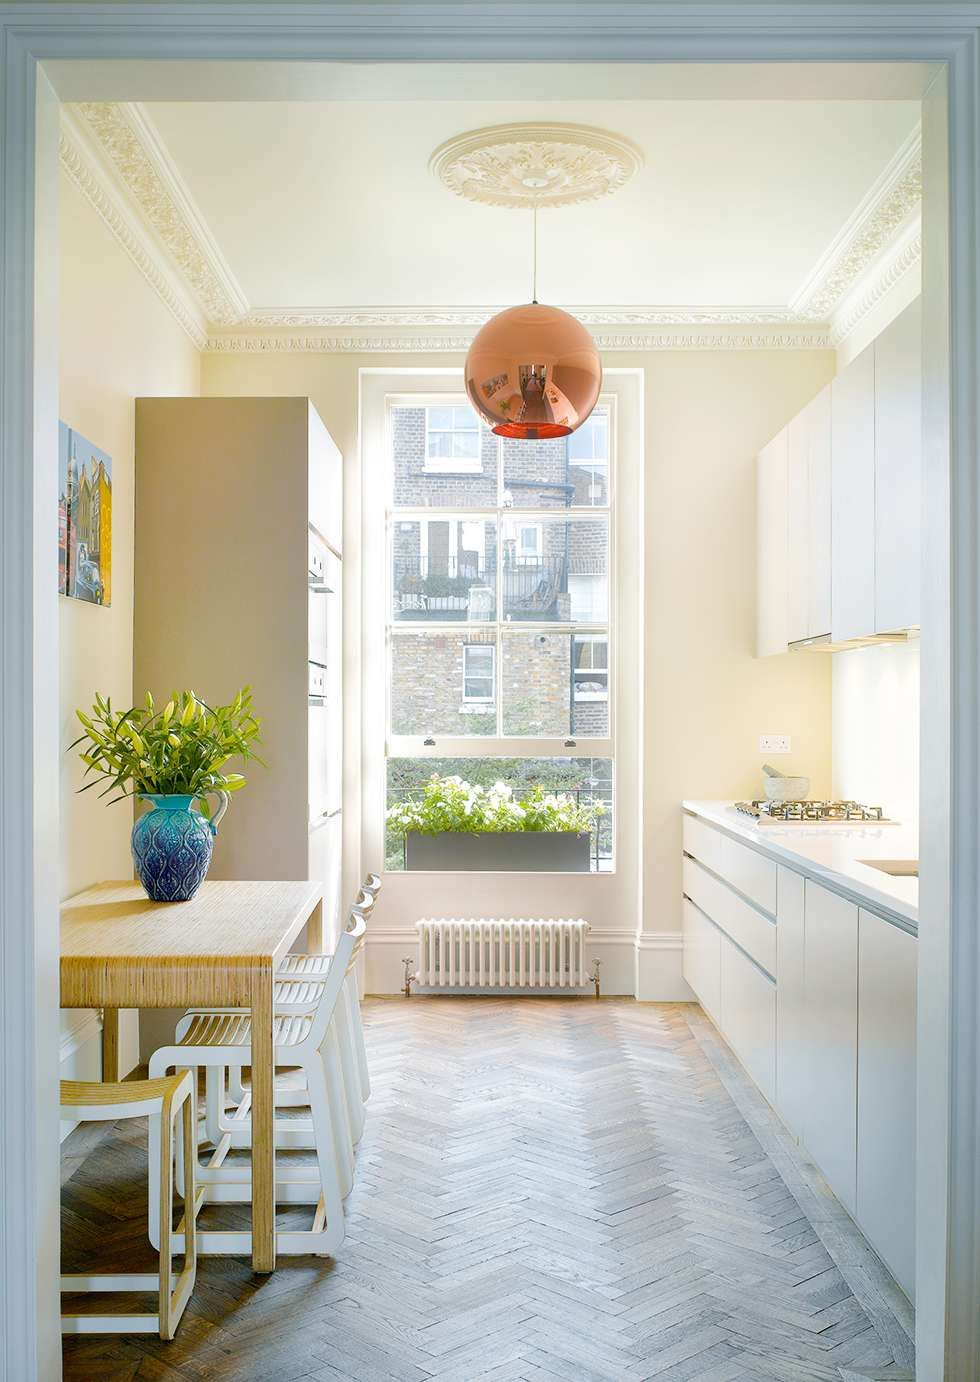 Design advice for maximising openplan galley and square kitchens